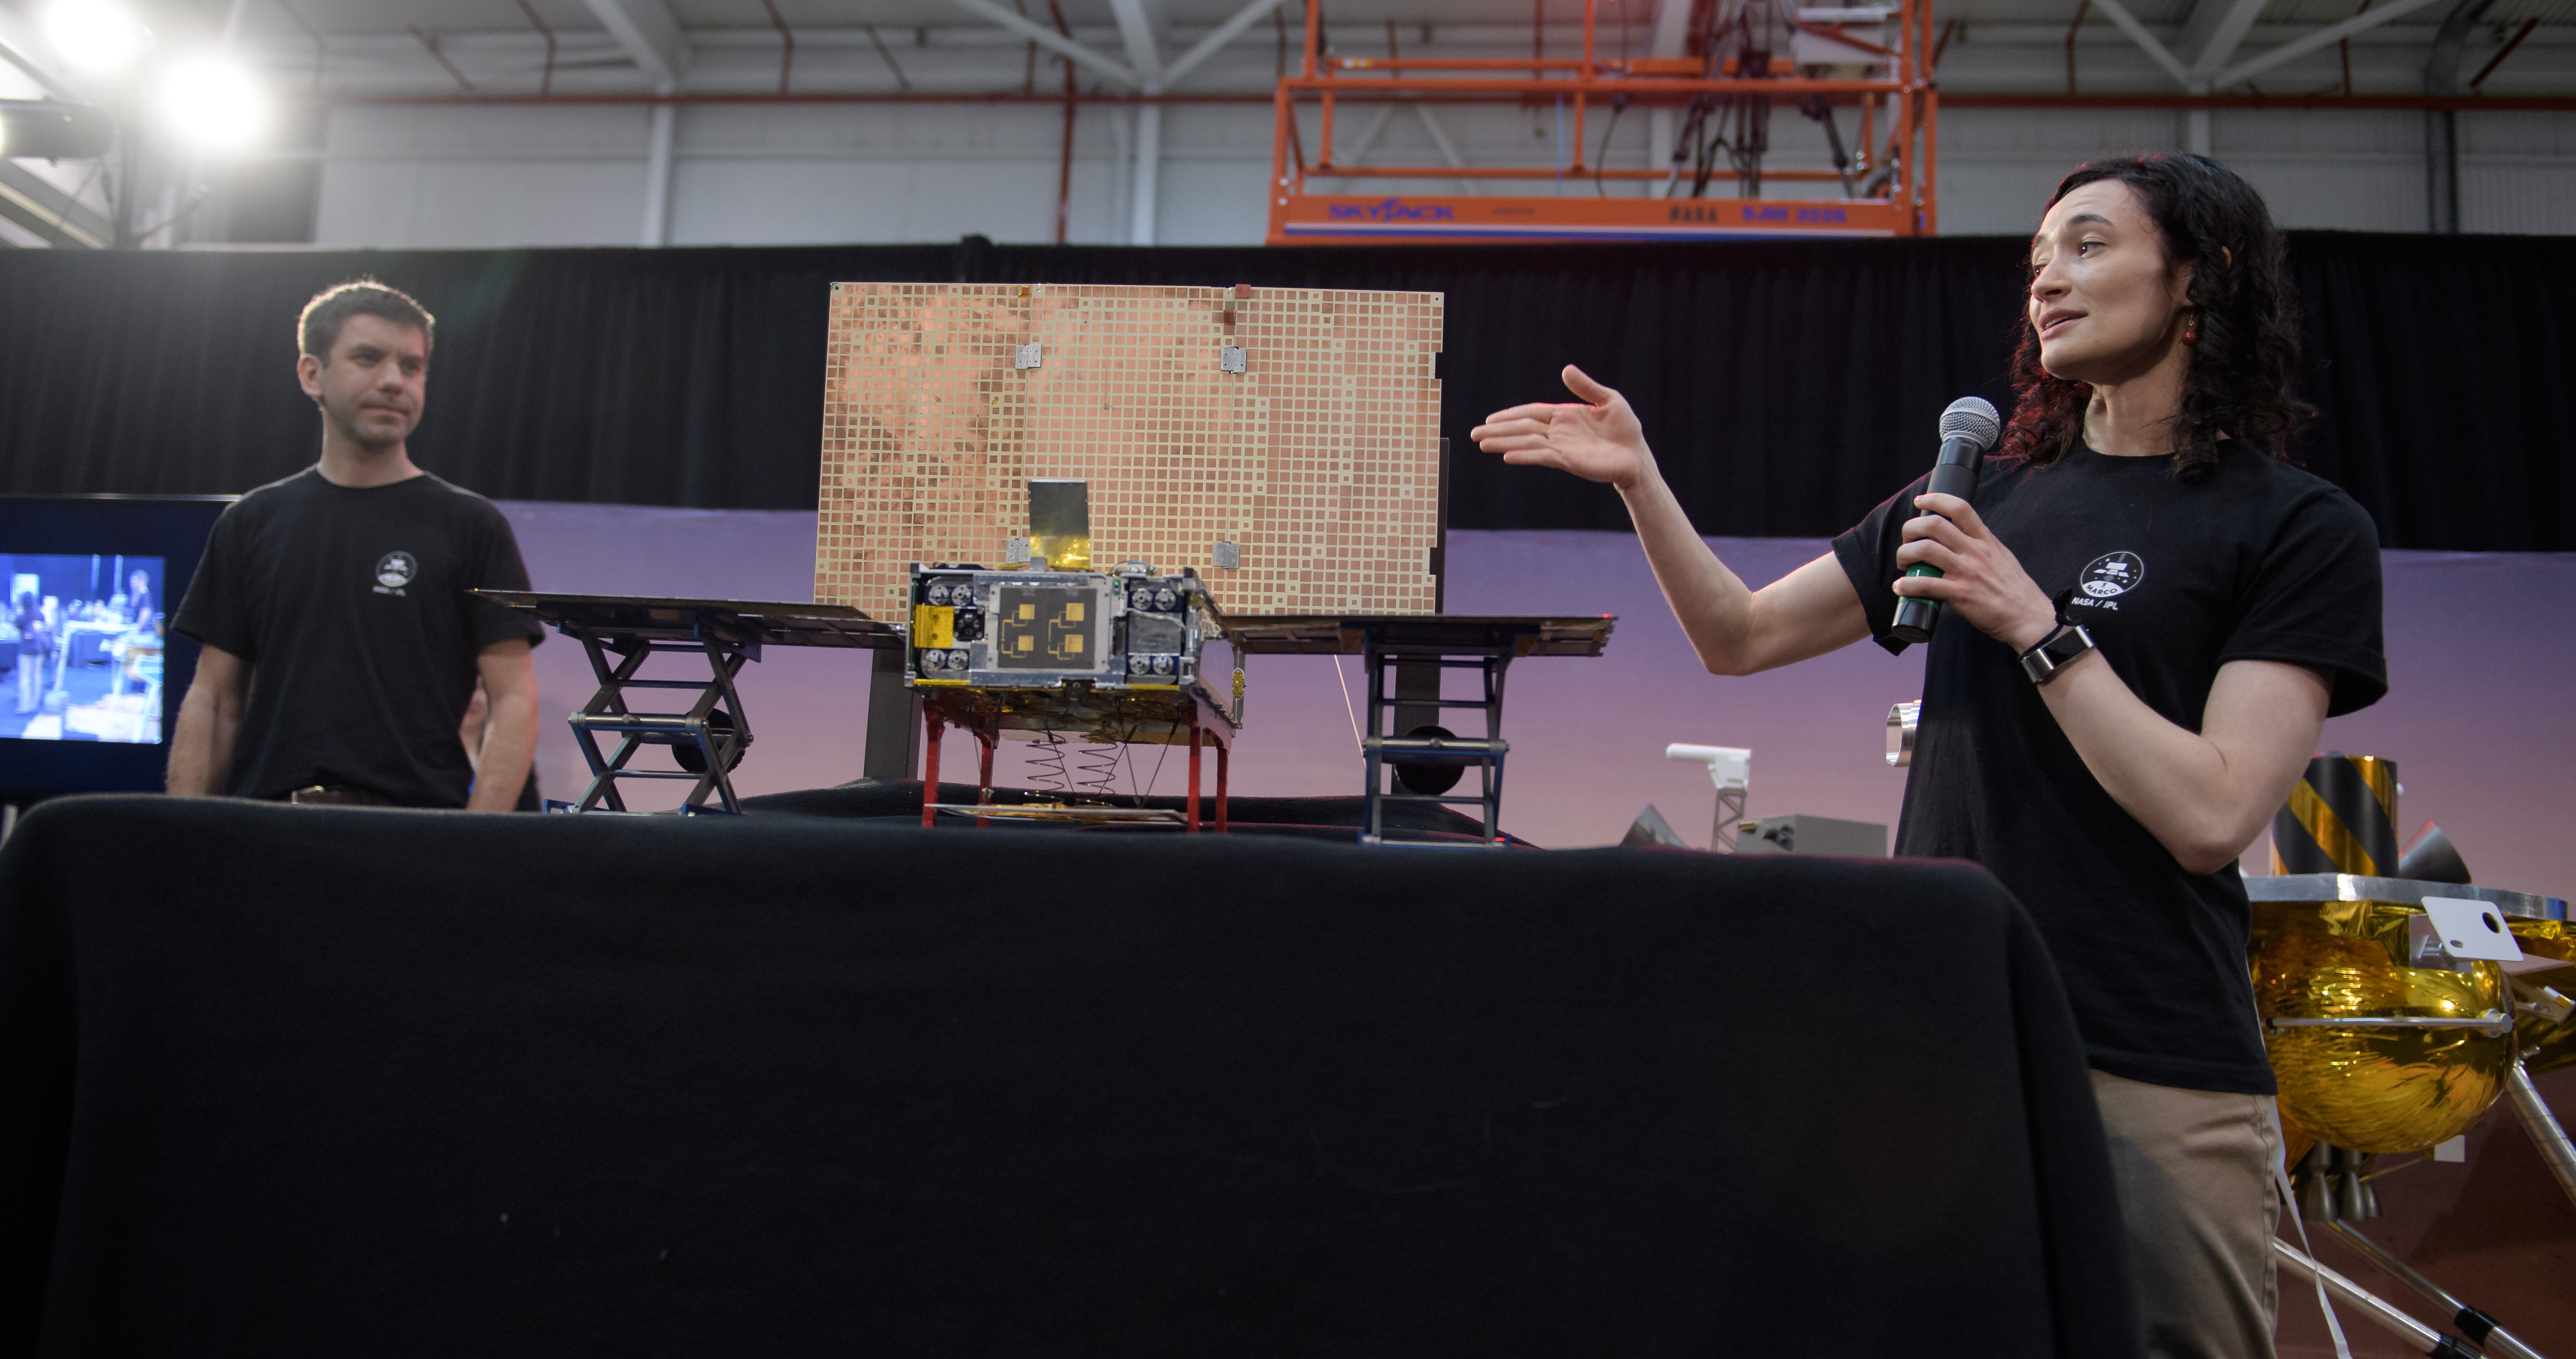 Man and woman standing next to MarCo cubesat.